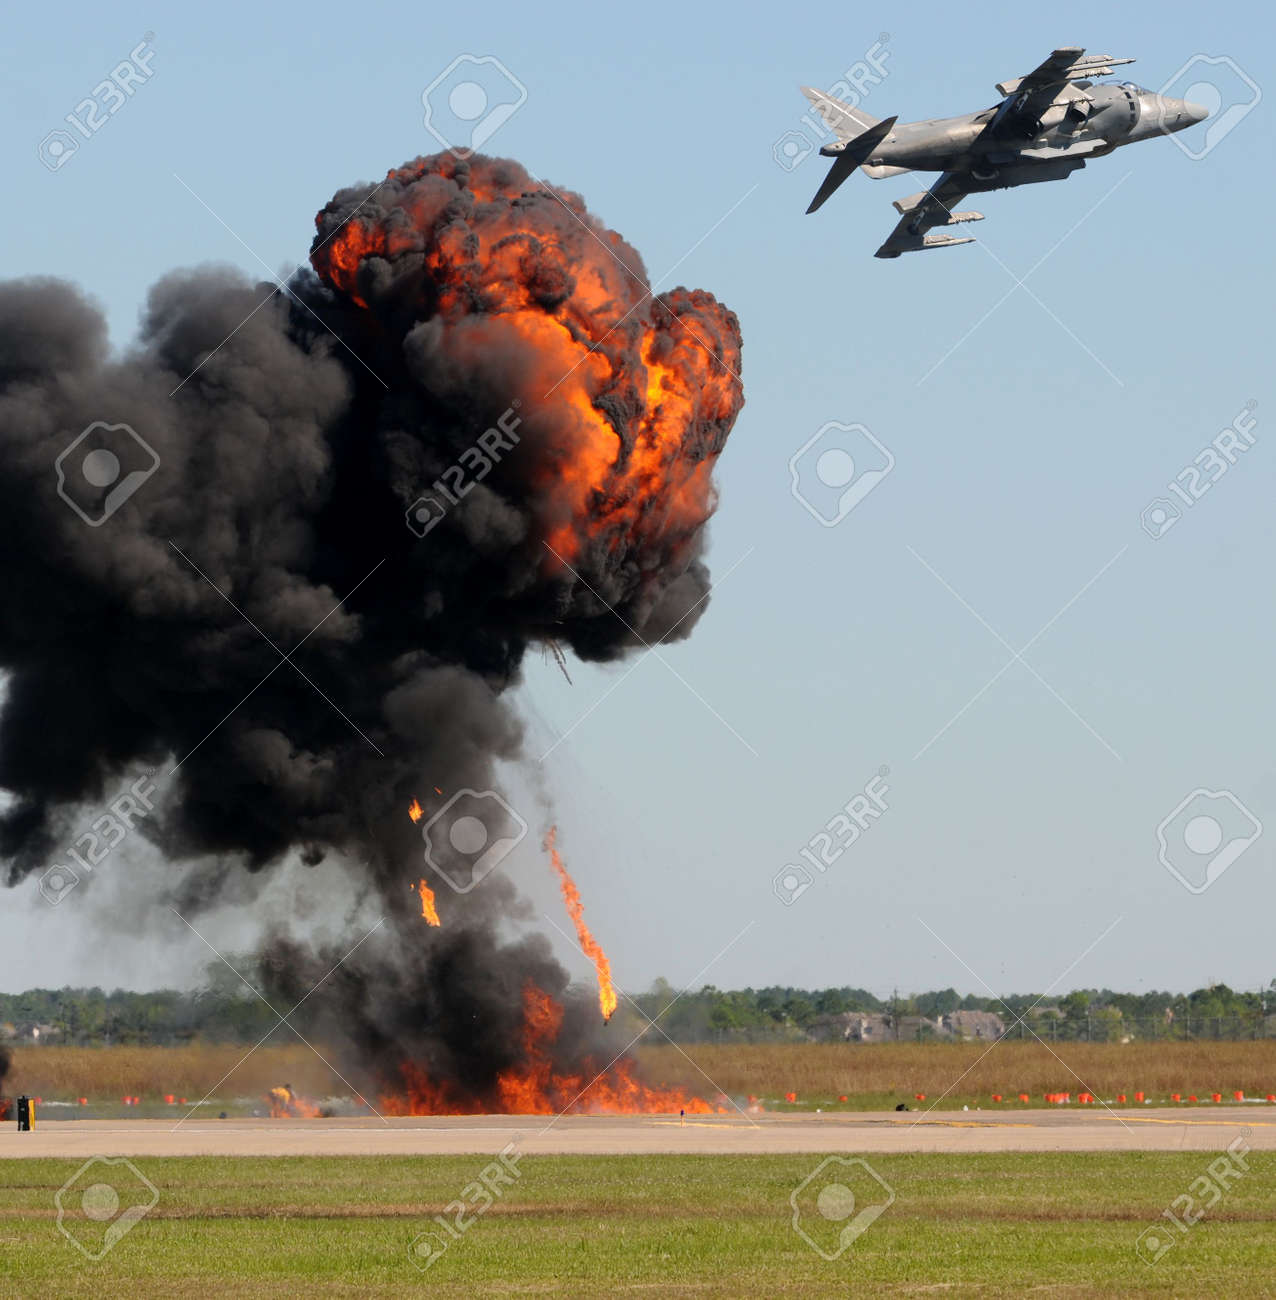 Air Force jetfighter in bomb drop Stock Photo - 5952811